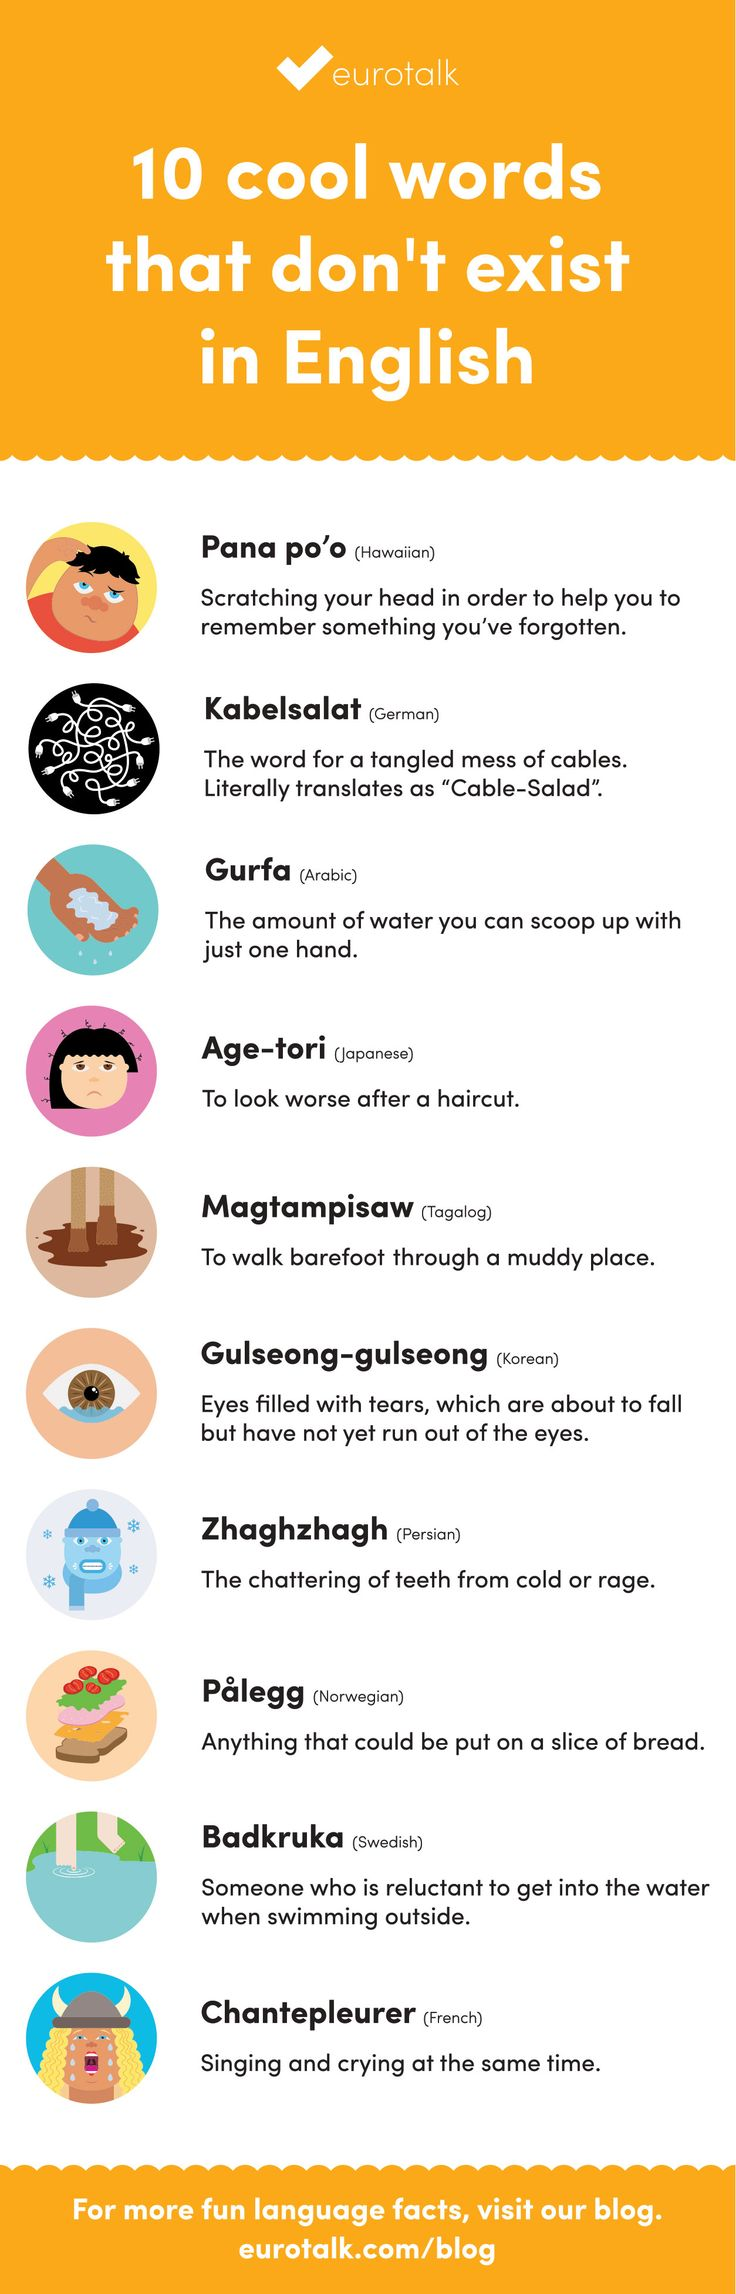 10 cool words that don't exist in English - Infographic - when translating from a language into another, some words occur that cannot really be translated though the translators have to do the job. As a translator you will exactly examine this word in order to translate the whole correctly. I found this funny infographic on the site of 'chantefleur'.